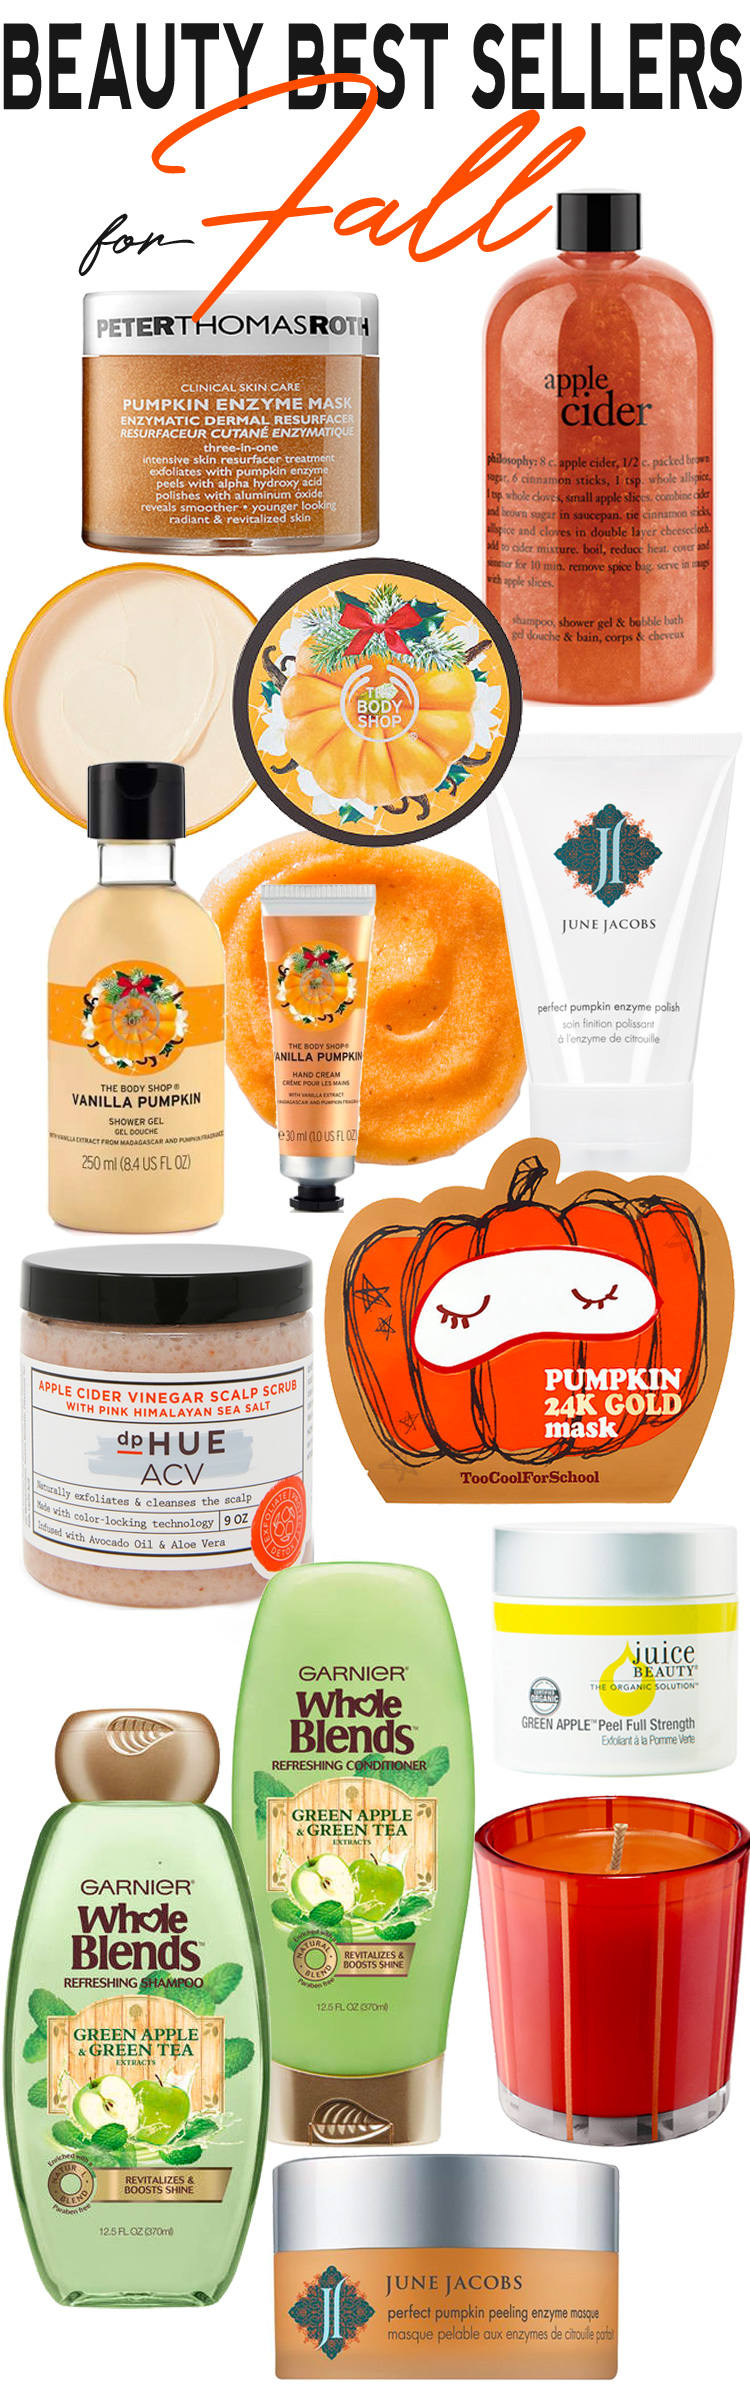 Beauty Best Sellers for Fall